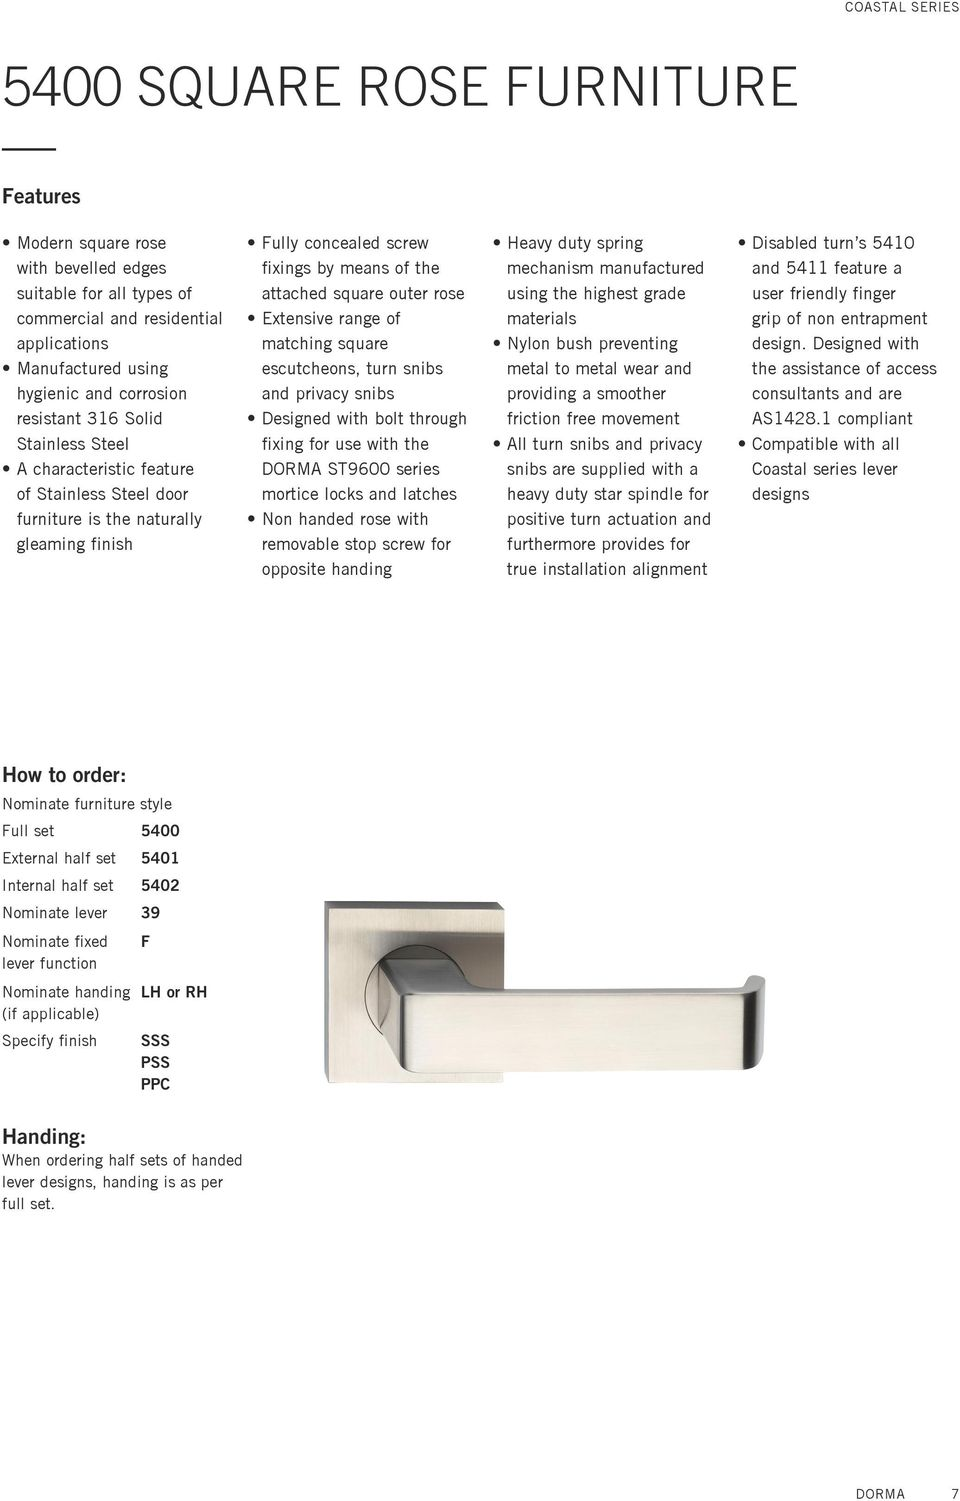 range of matching square escutcheons, turn snibs and privacy snibs Designed with bolt through fixing for use with the DORMA ST9600 series mortice locks and latches Non handed rose with removable stop